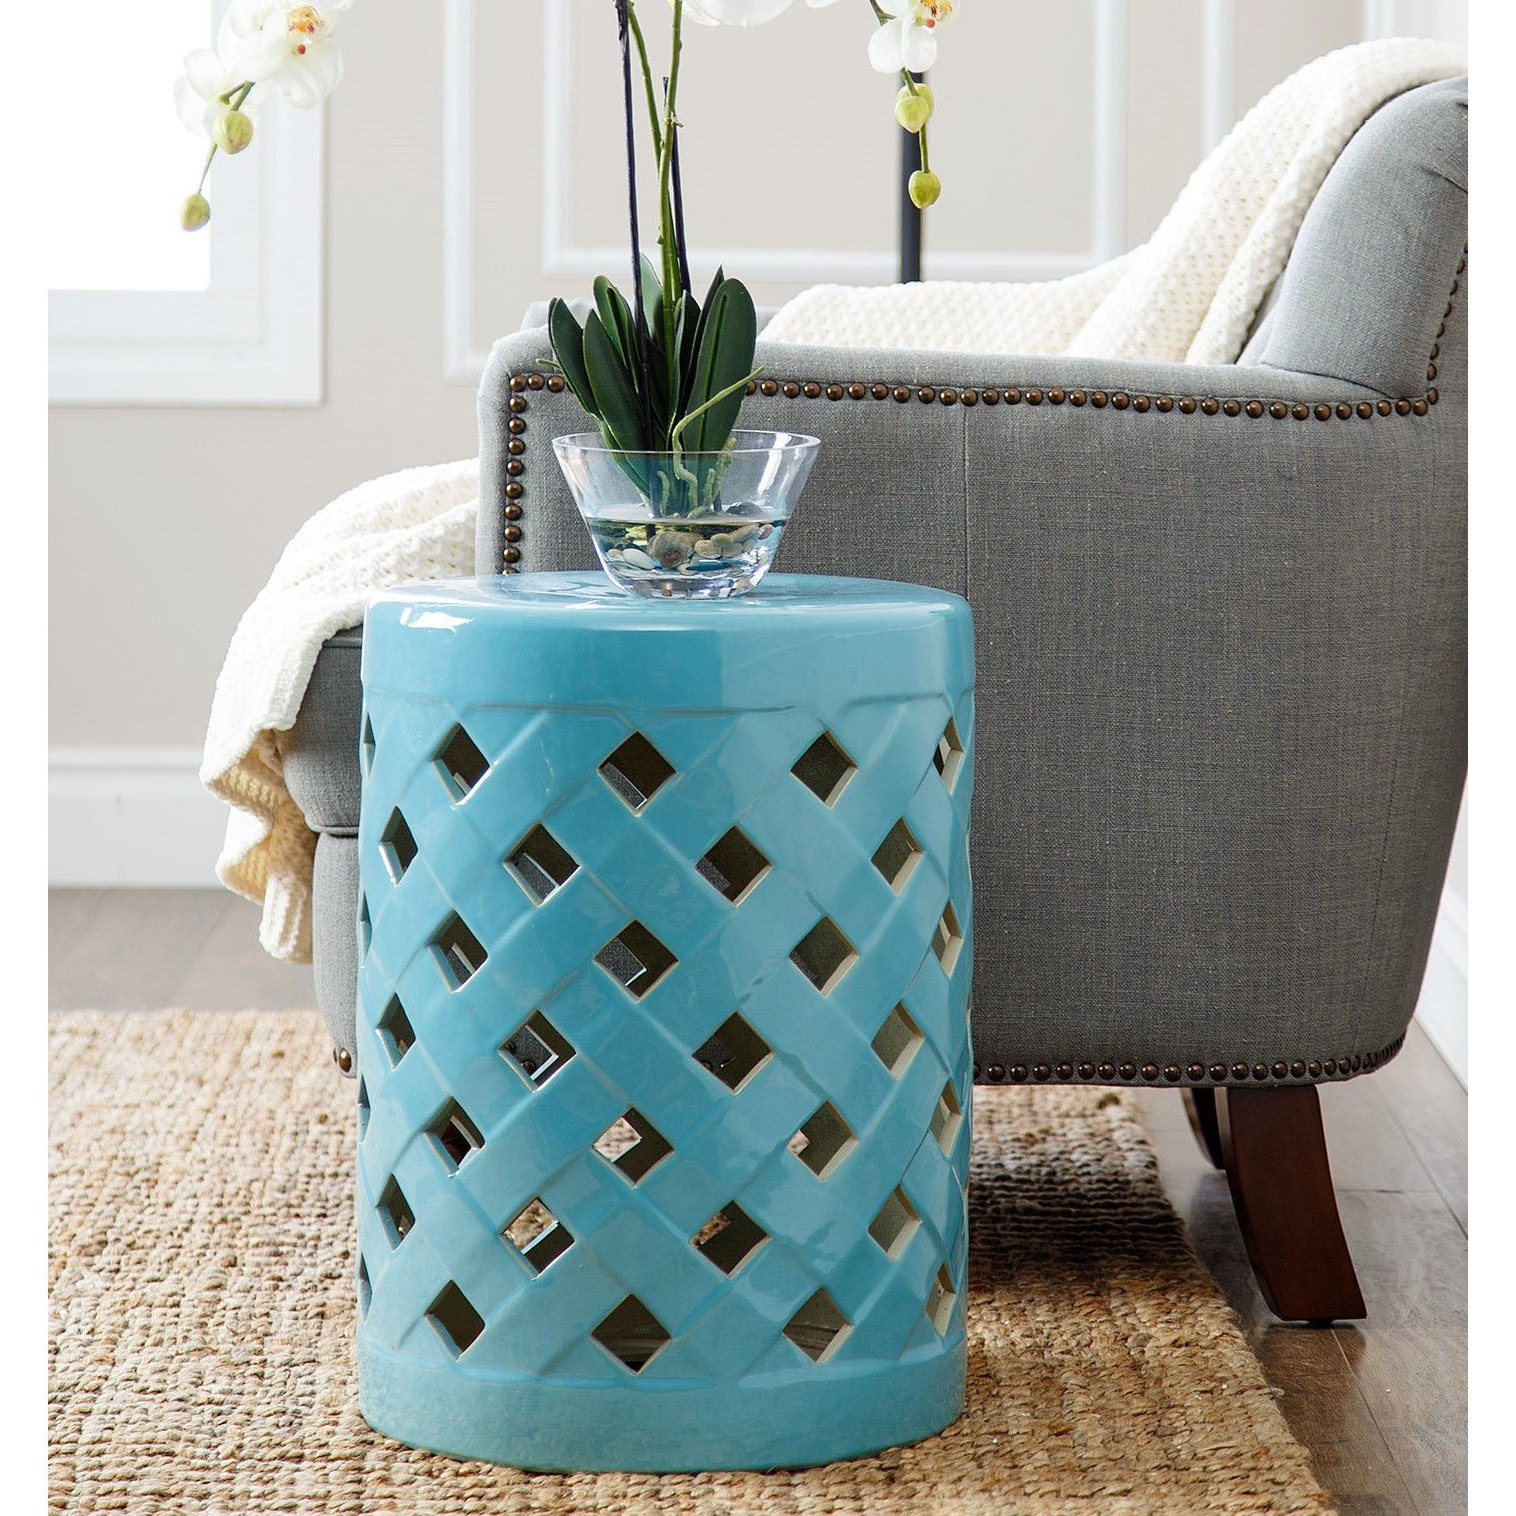 decoration ceramic garden stool chinese drum side table metal unusual flower vases blue rug for living room ideas cream pier one accent ashley furniture chaise dale tiffany amber